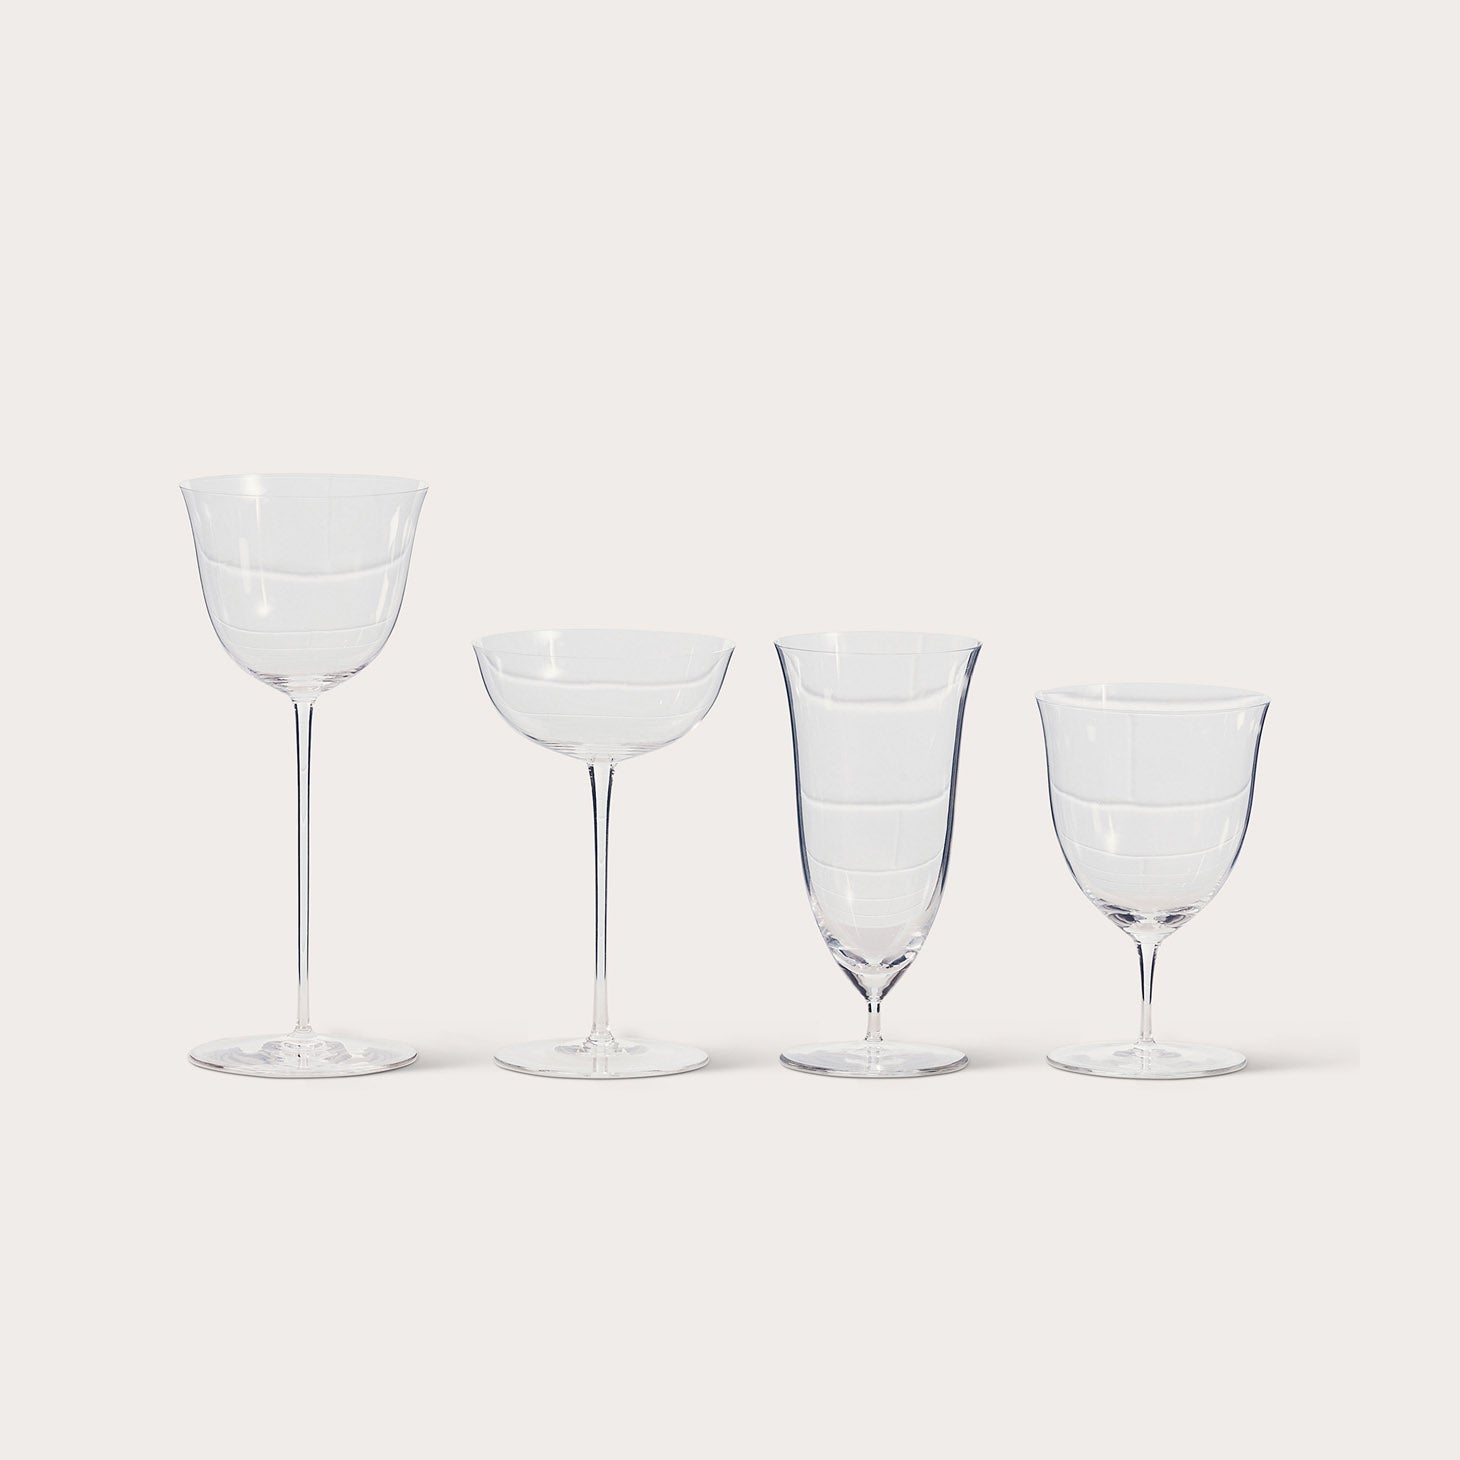 Drinking Set No. 238 Patrician Accessories Josef Hoffmann Designer Furniture Sku: 220-100-10240